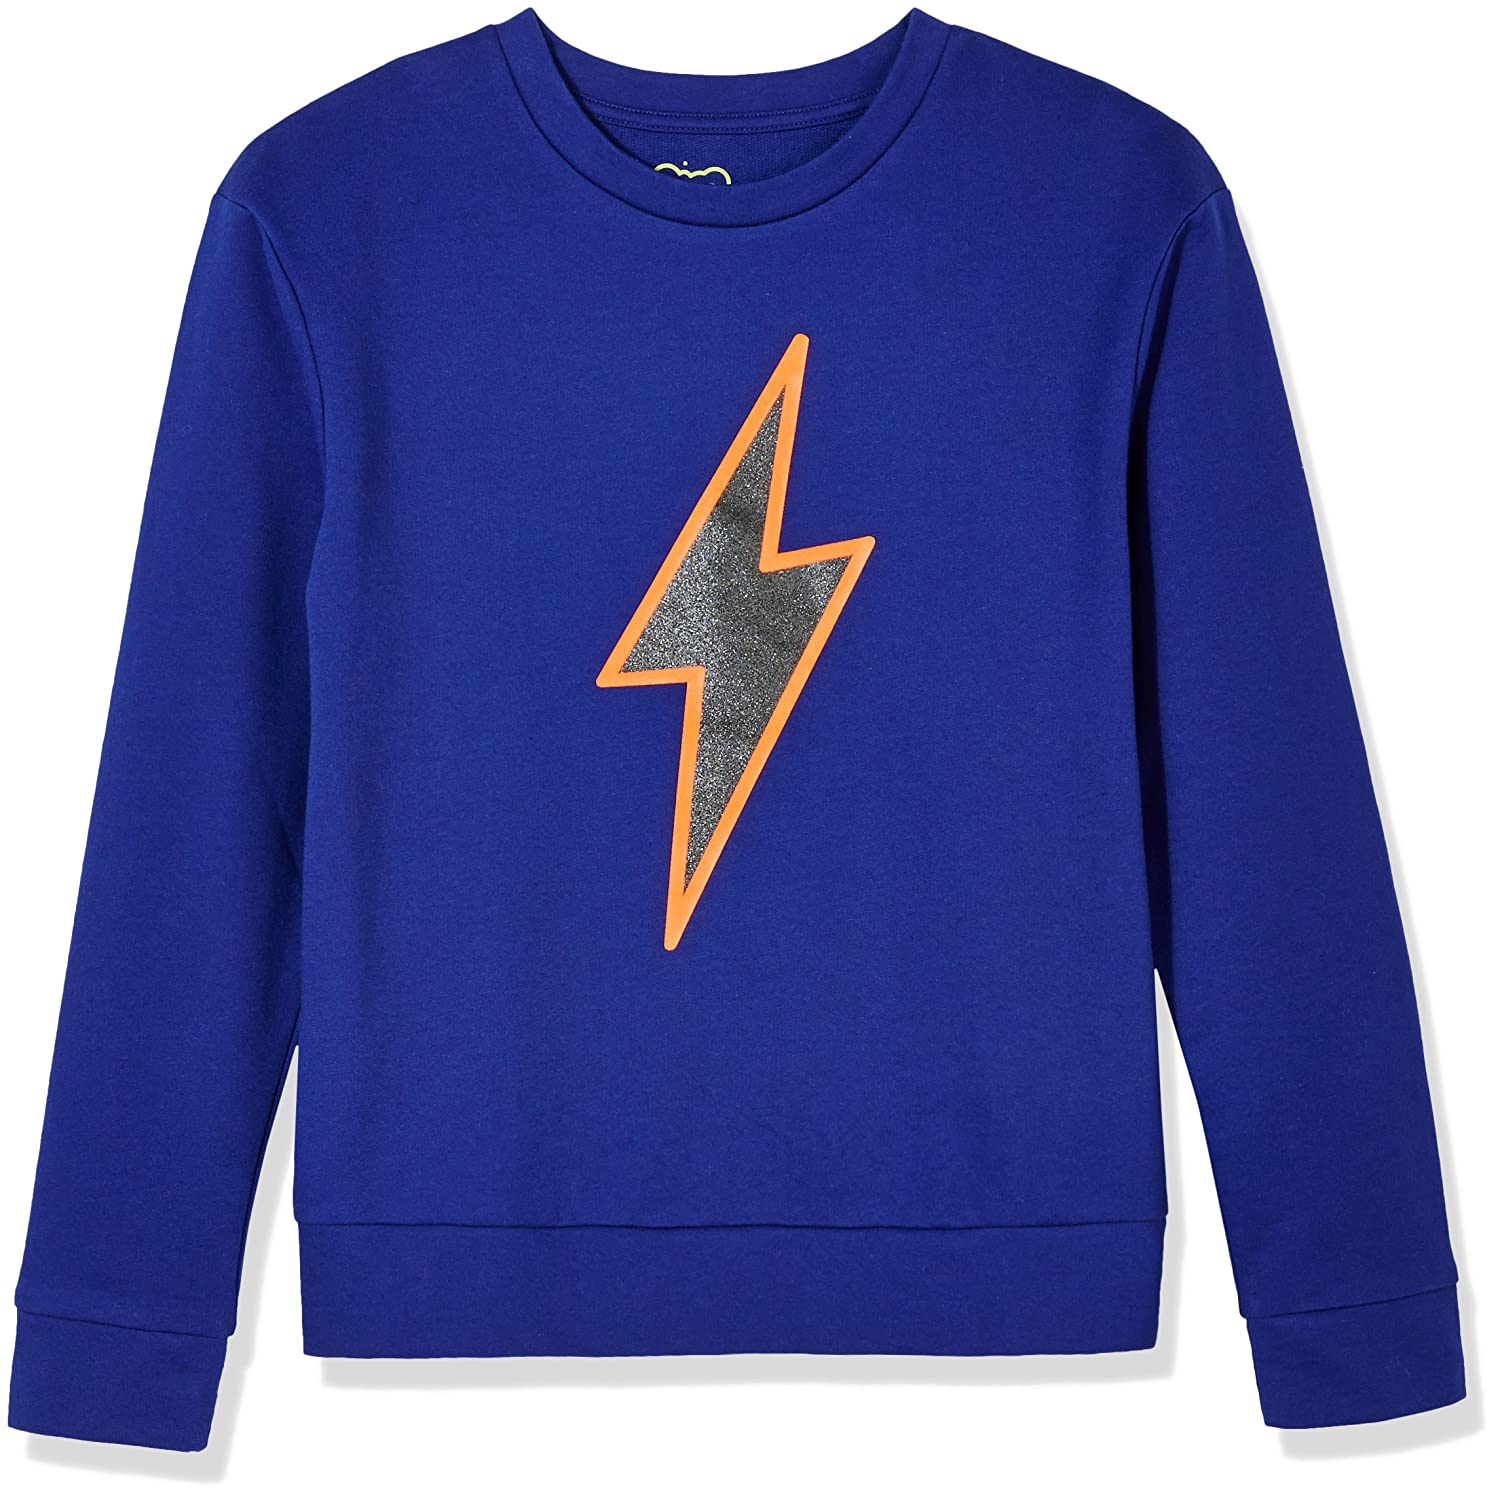 A for Awesome Youth Boys Long-Sleeve French Terry Sweatshirt with Placed Graphic